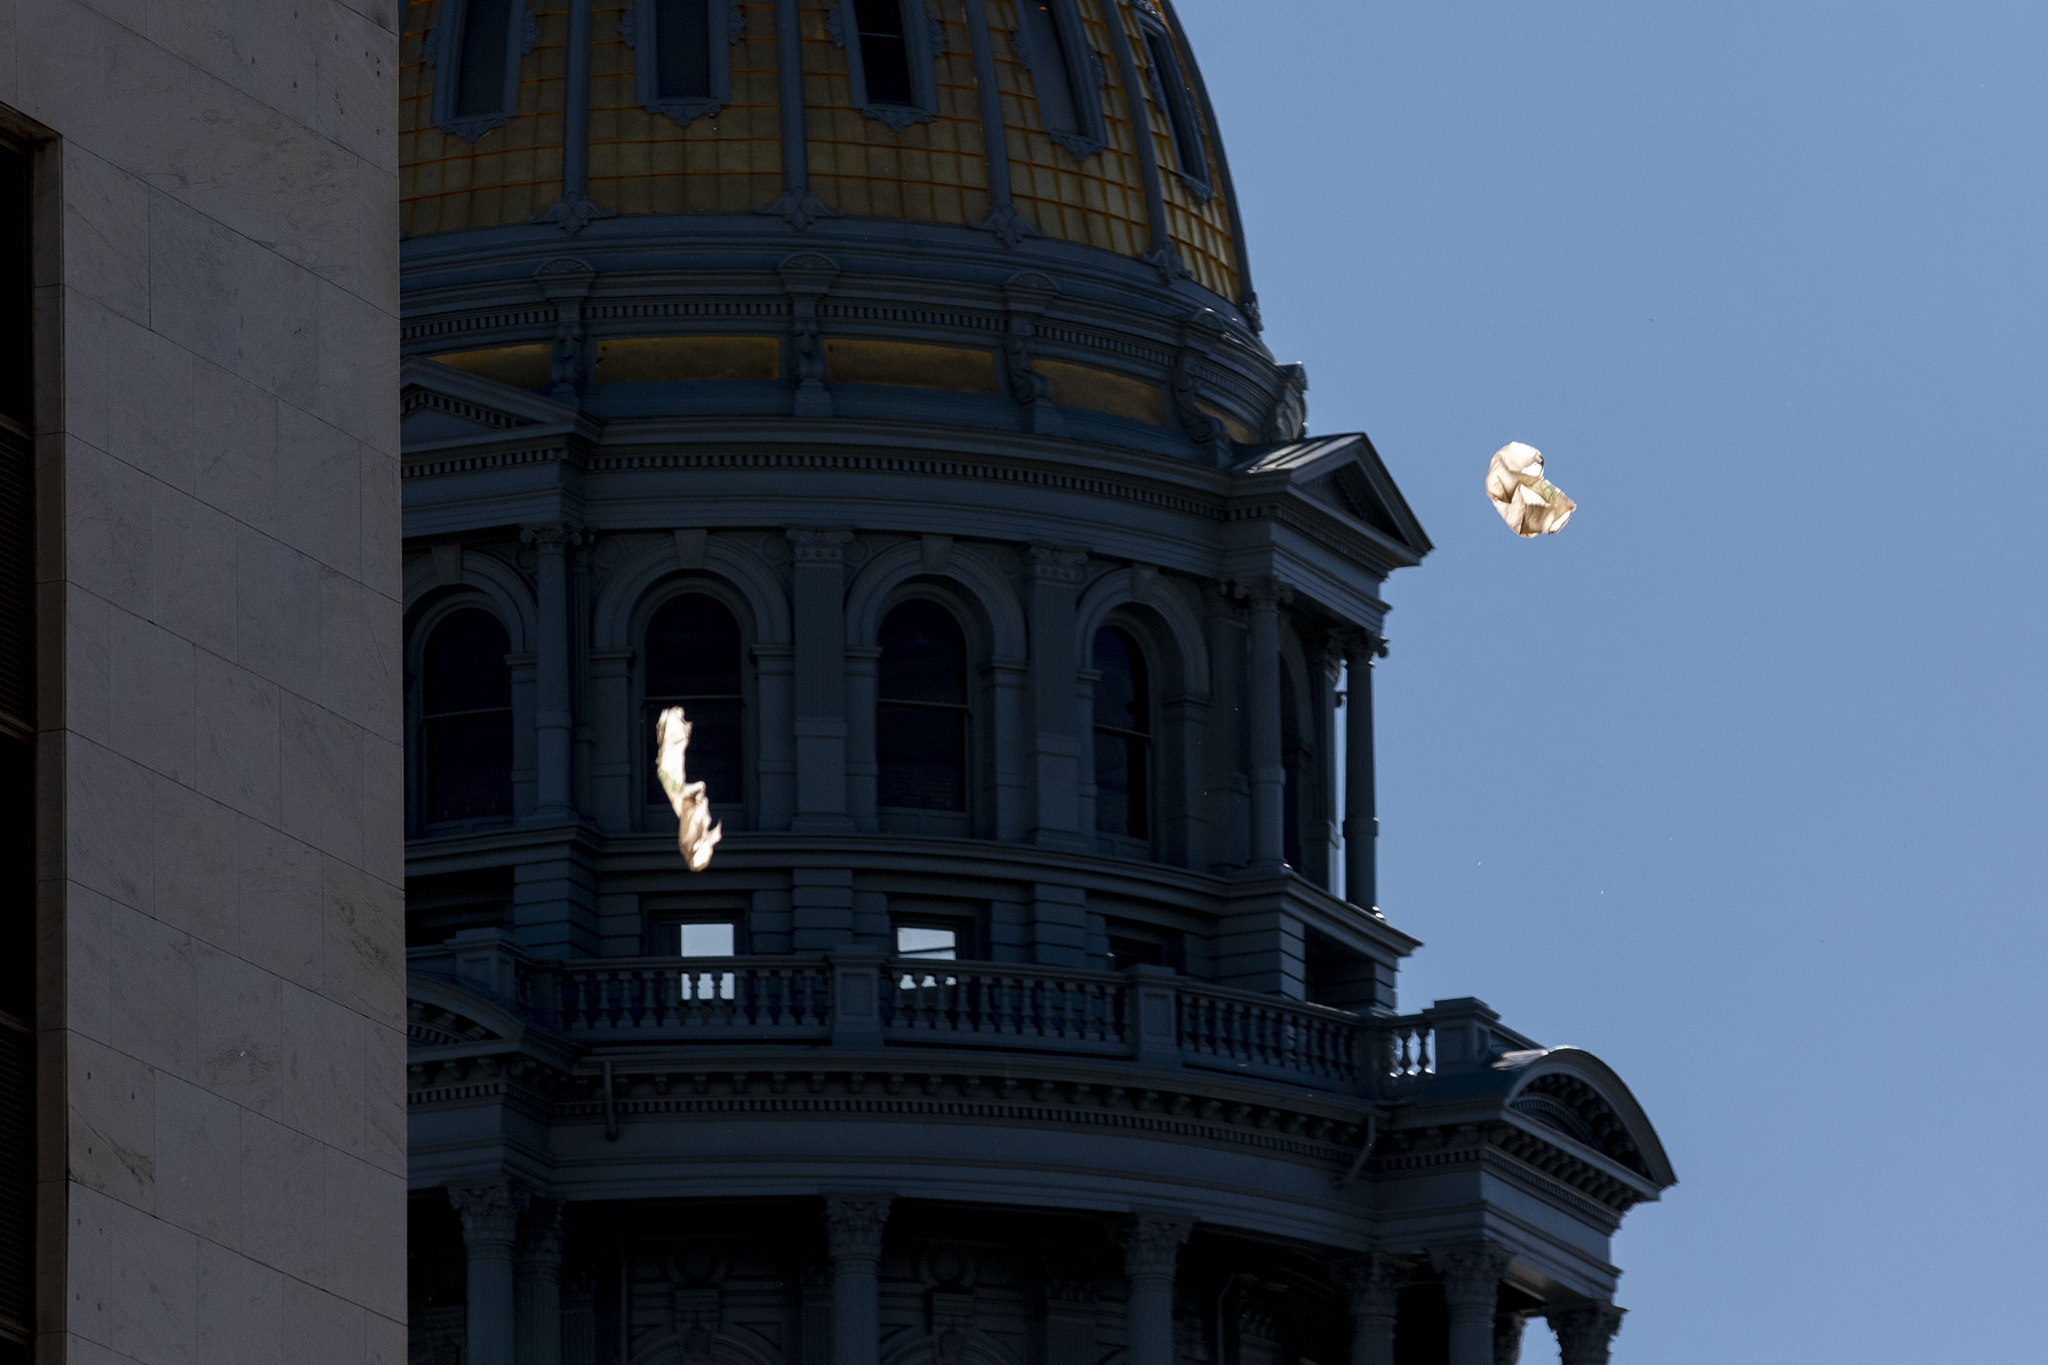 Plastic bags float in the breeze on a very windy day outside of the Colorado State Capitol.